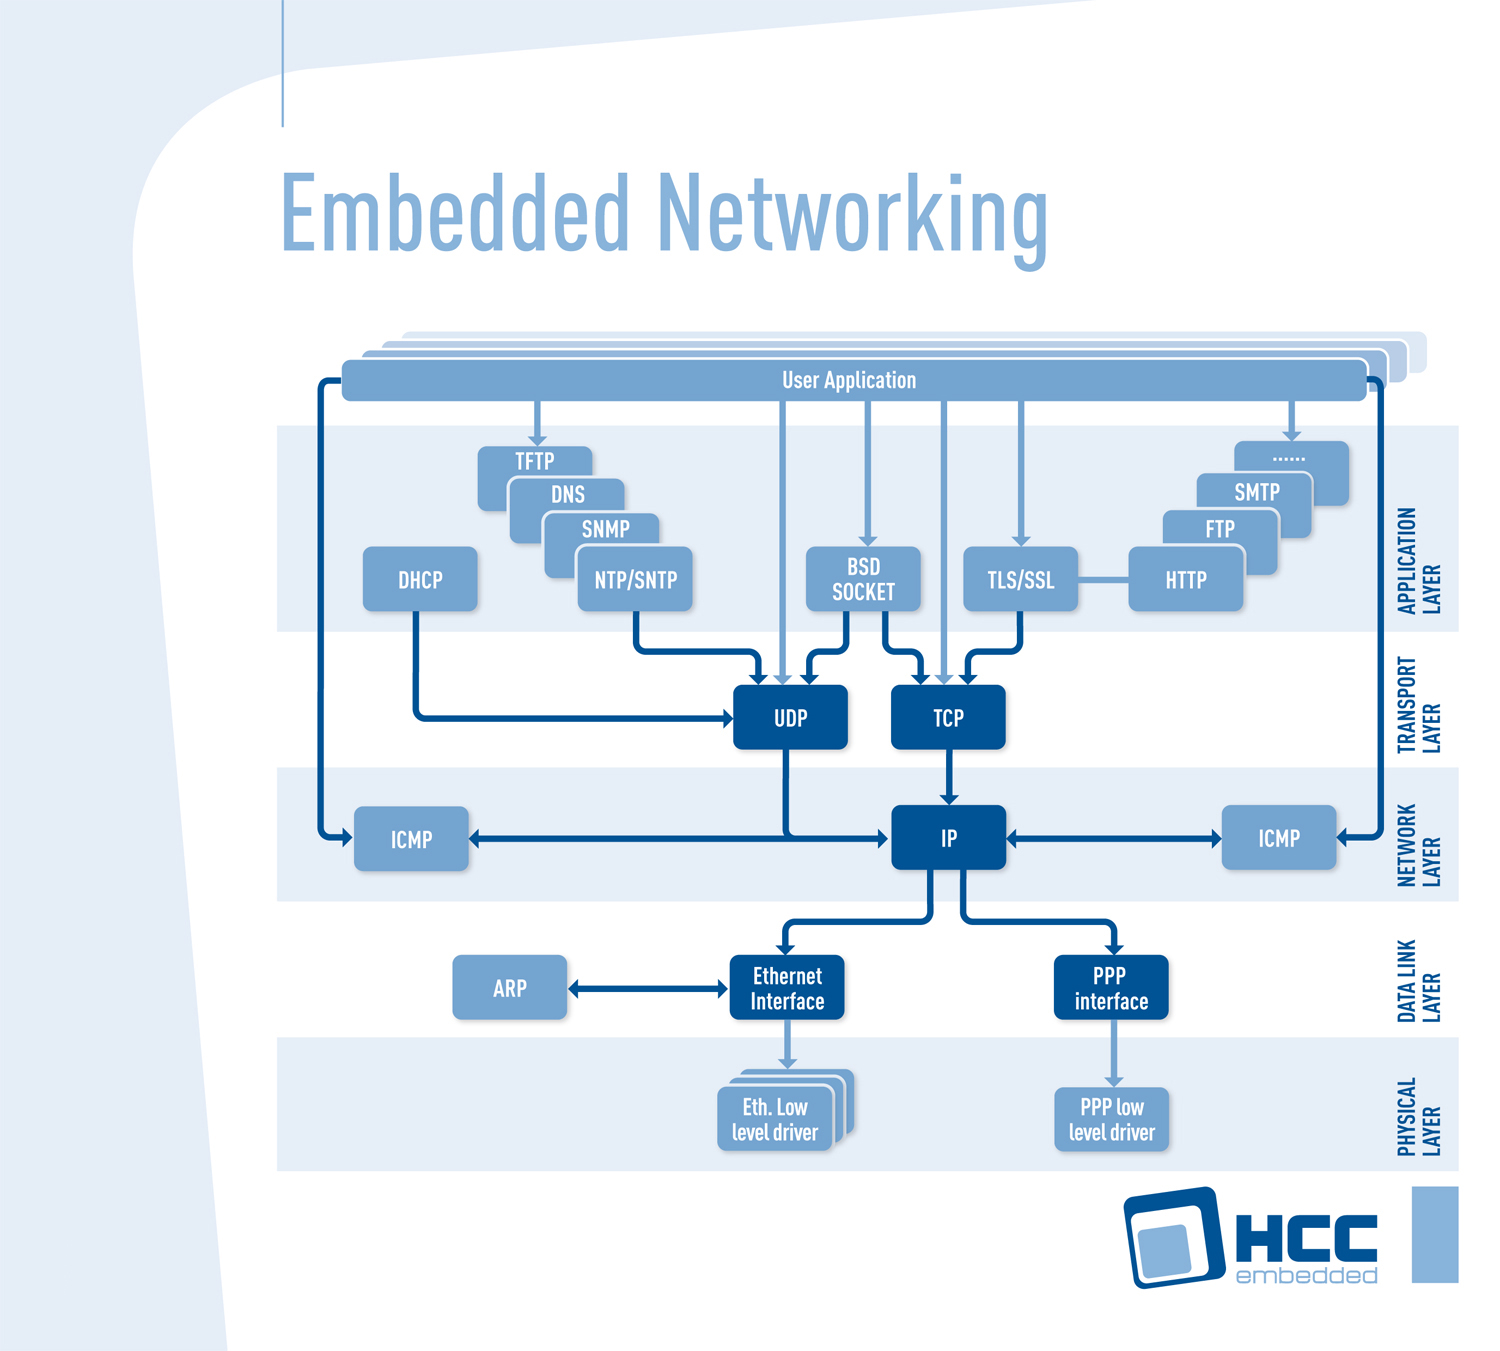 MISRA-compliant protocols enhance embedded networking stack